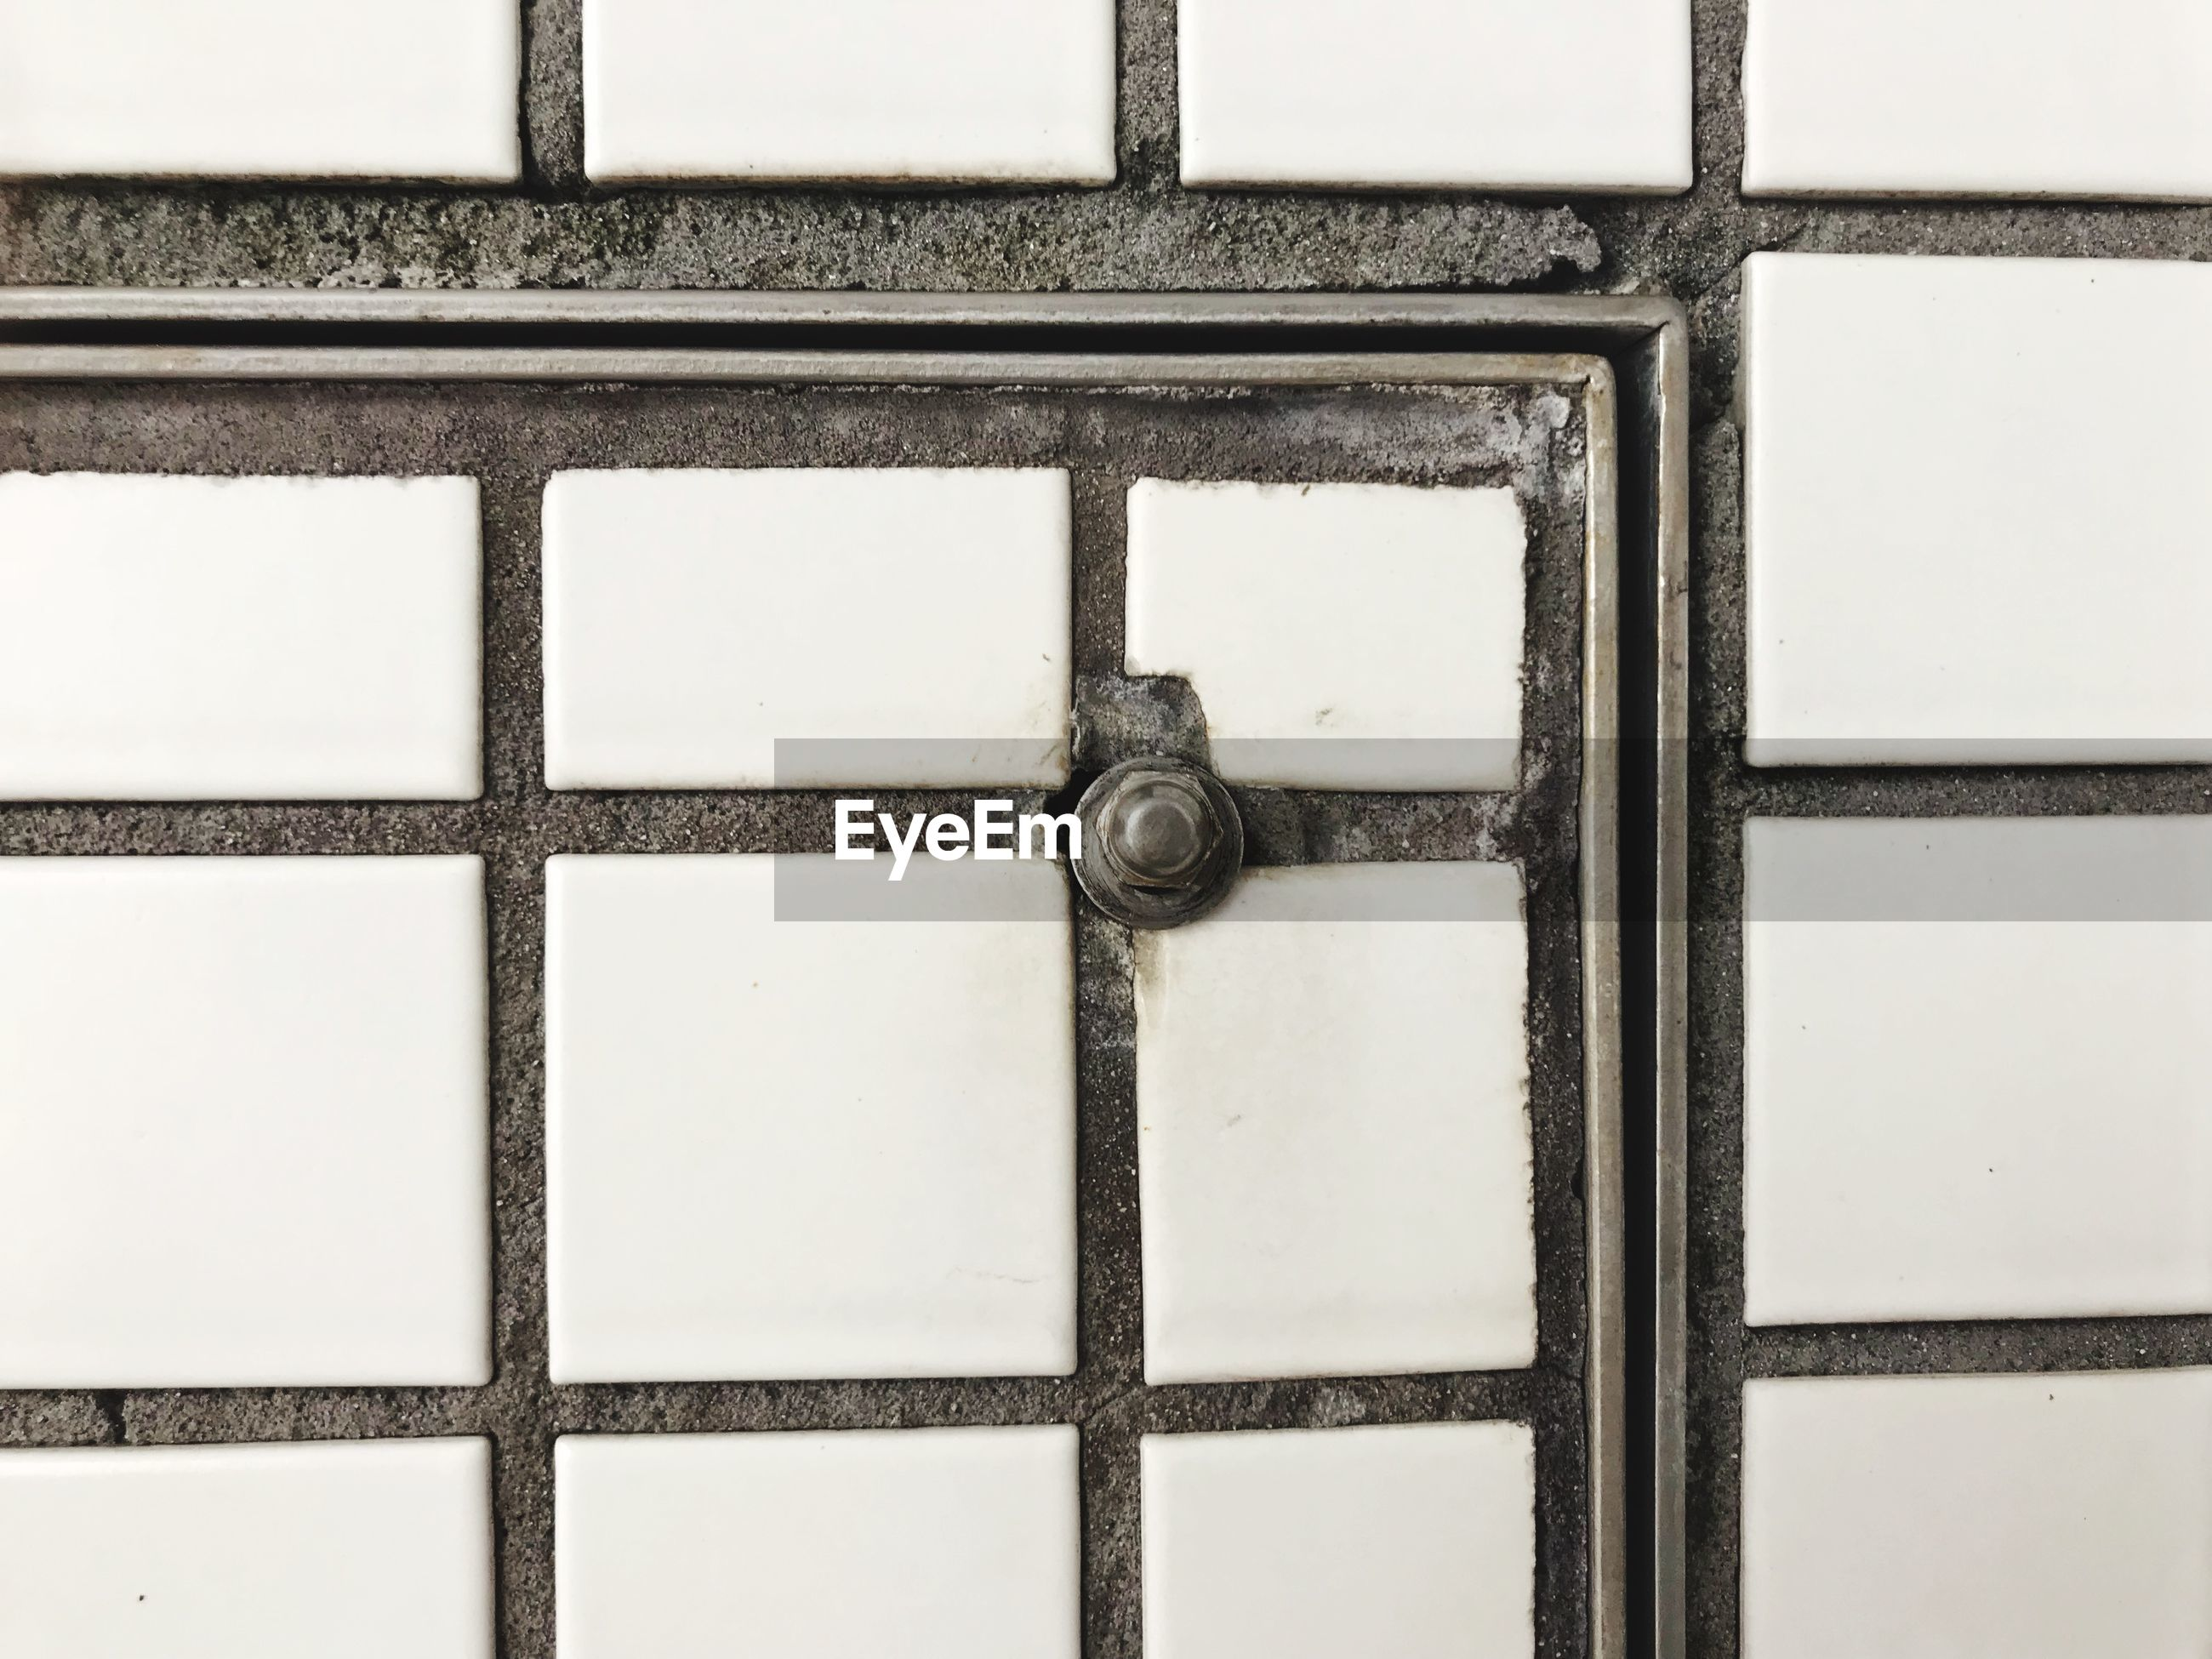 FULL FRAME SHOT OF METAL DOOR WITH TEXT ON WALL